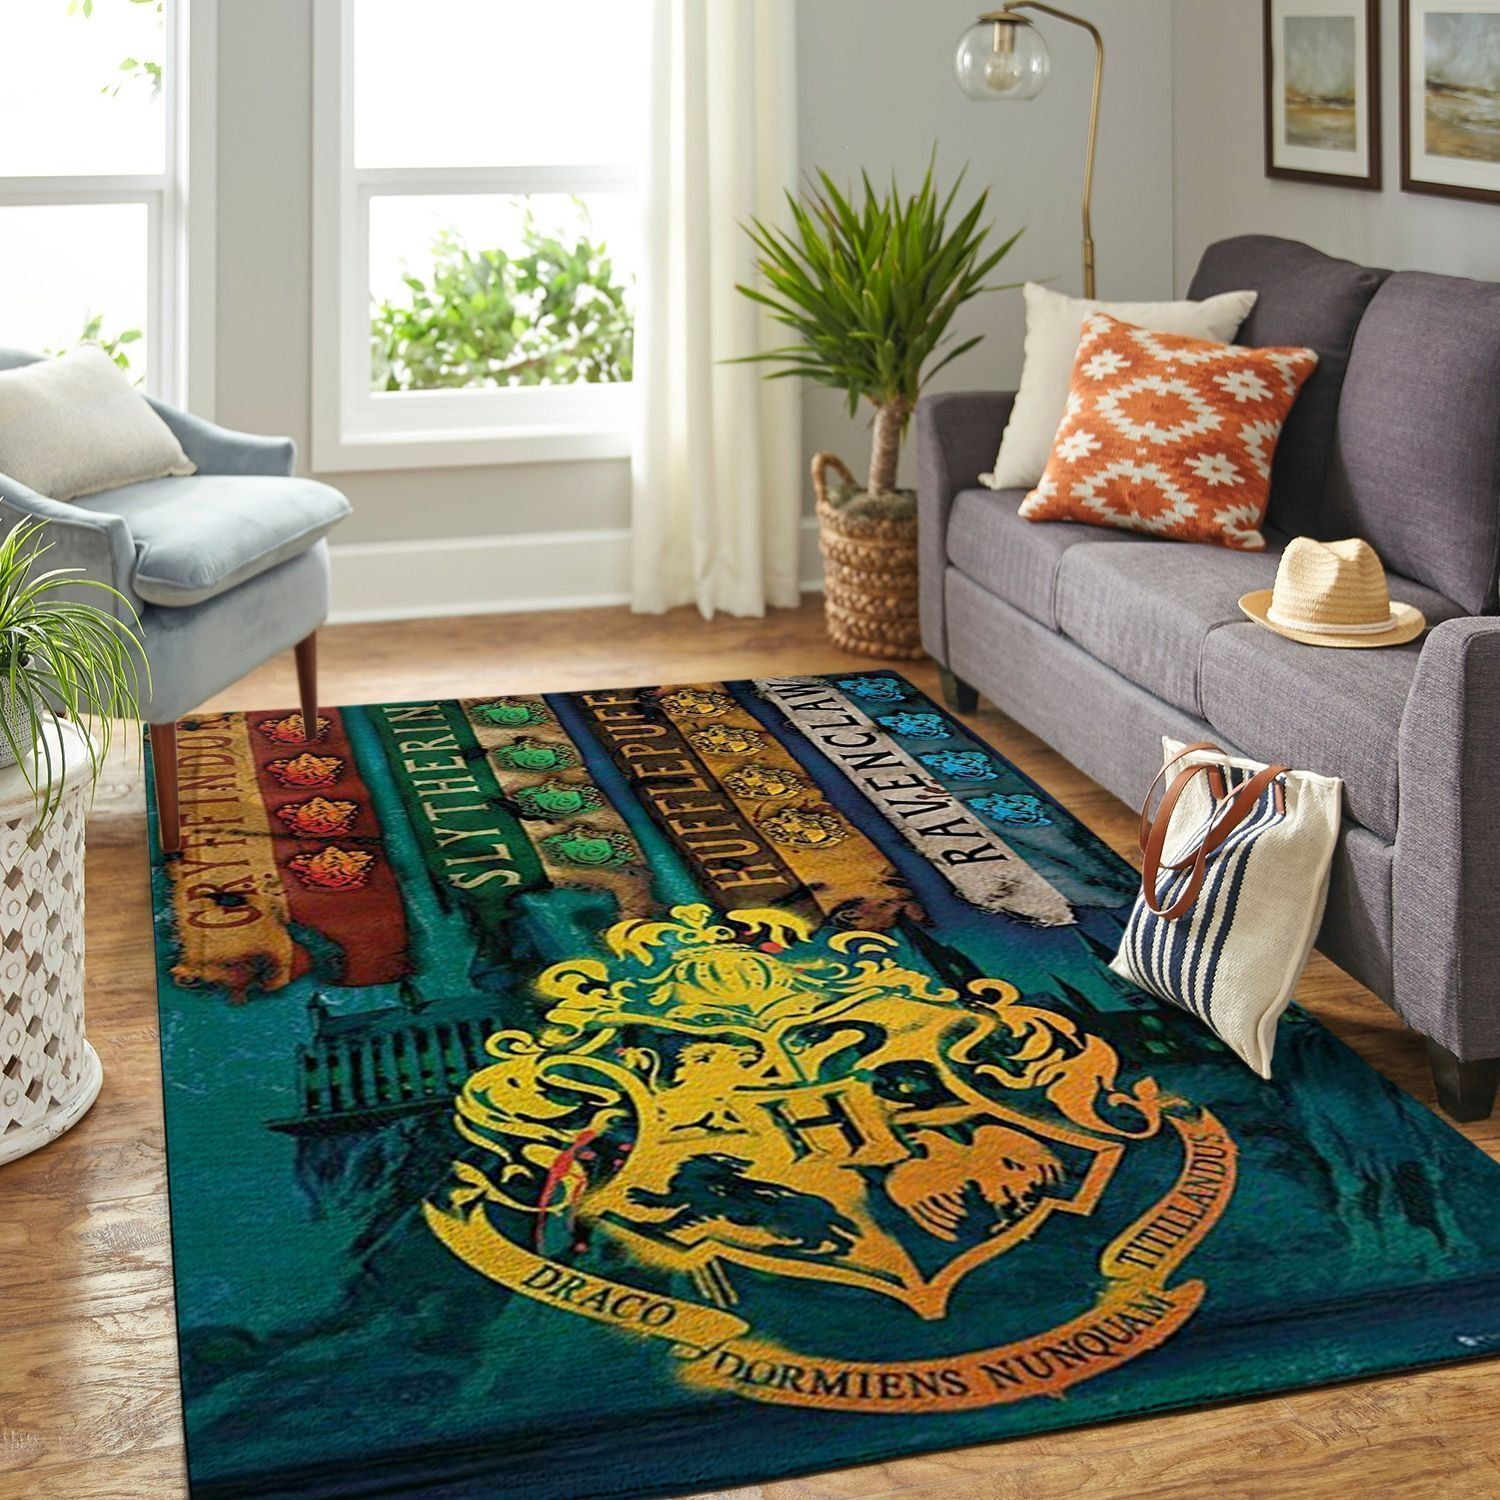 Amazon Harry Potter Living Room Area No6159 Rug